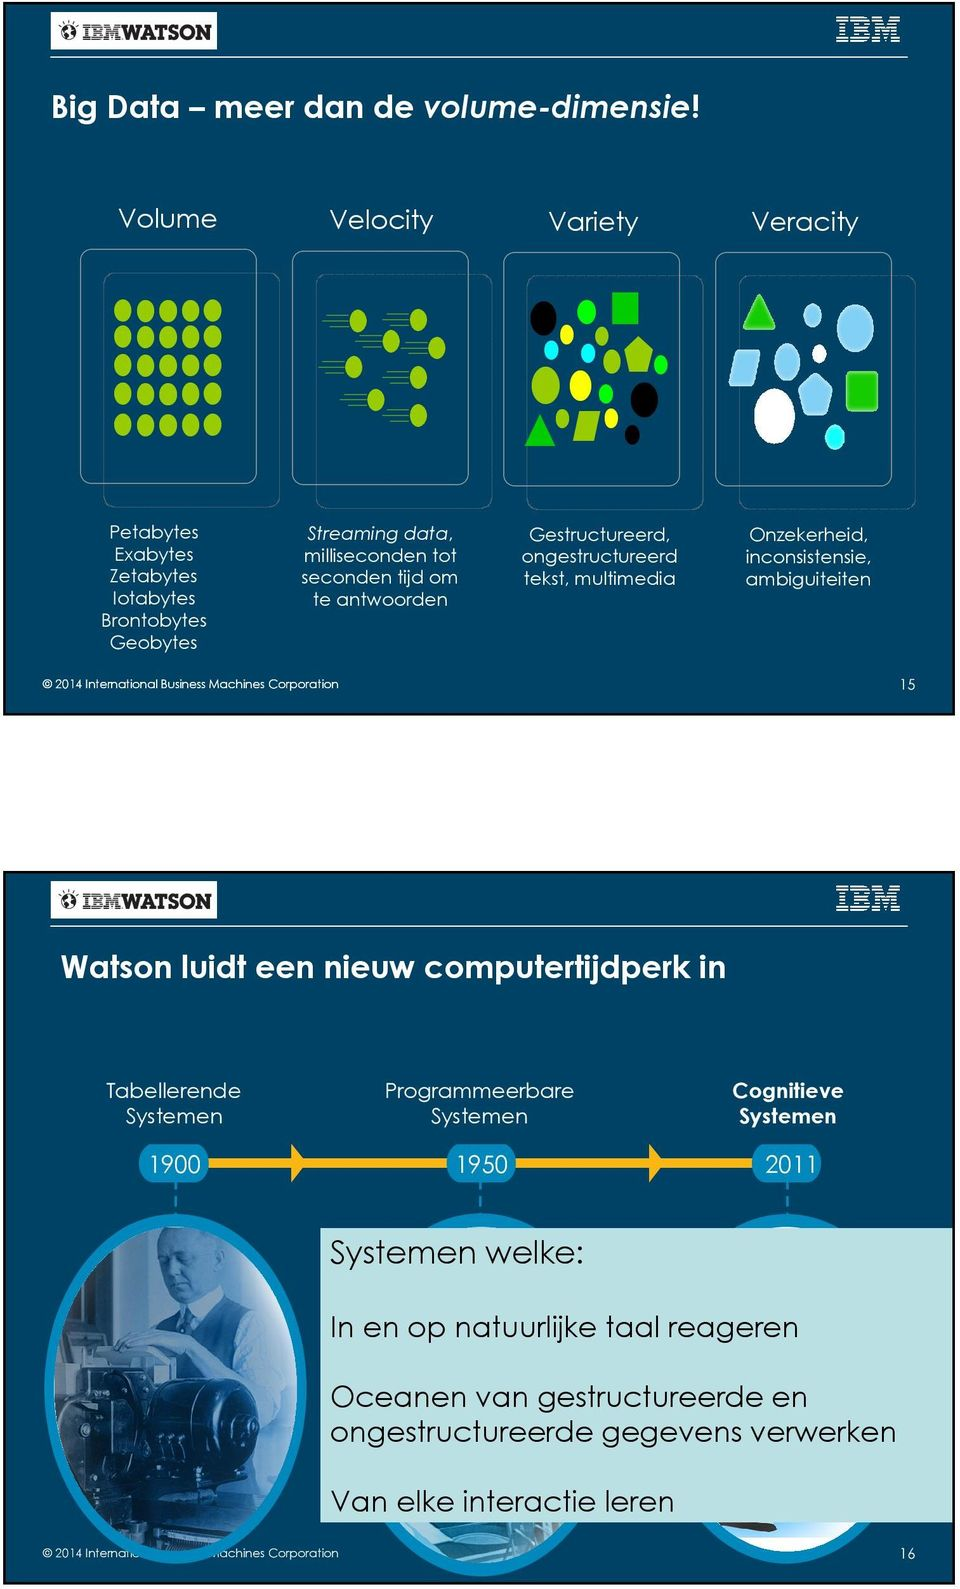 Gestructureerd, ongestructureerd tekst, multimedia Onzekerheid, inconsistensie, ambiguiteiten 2014 International Business Machines Corporation 15 Watson luidt een